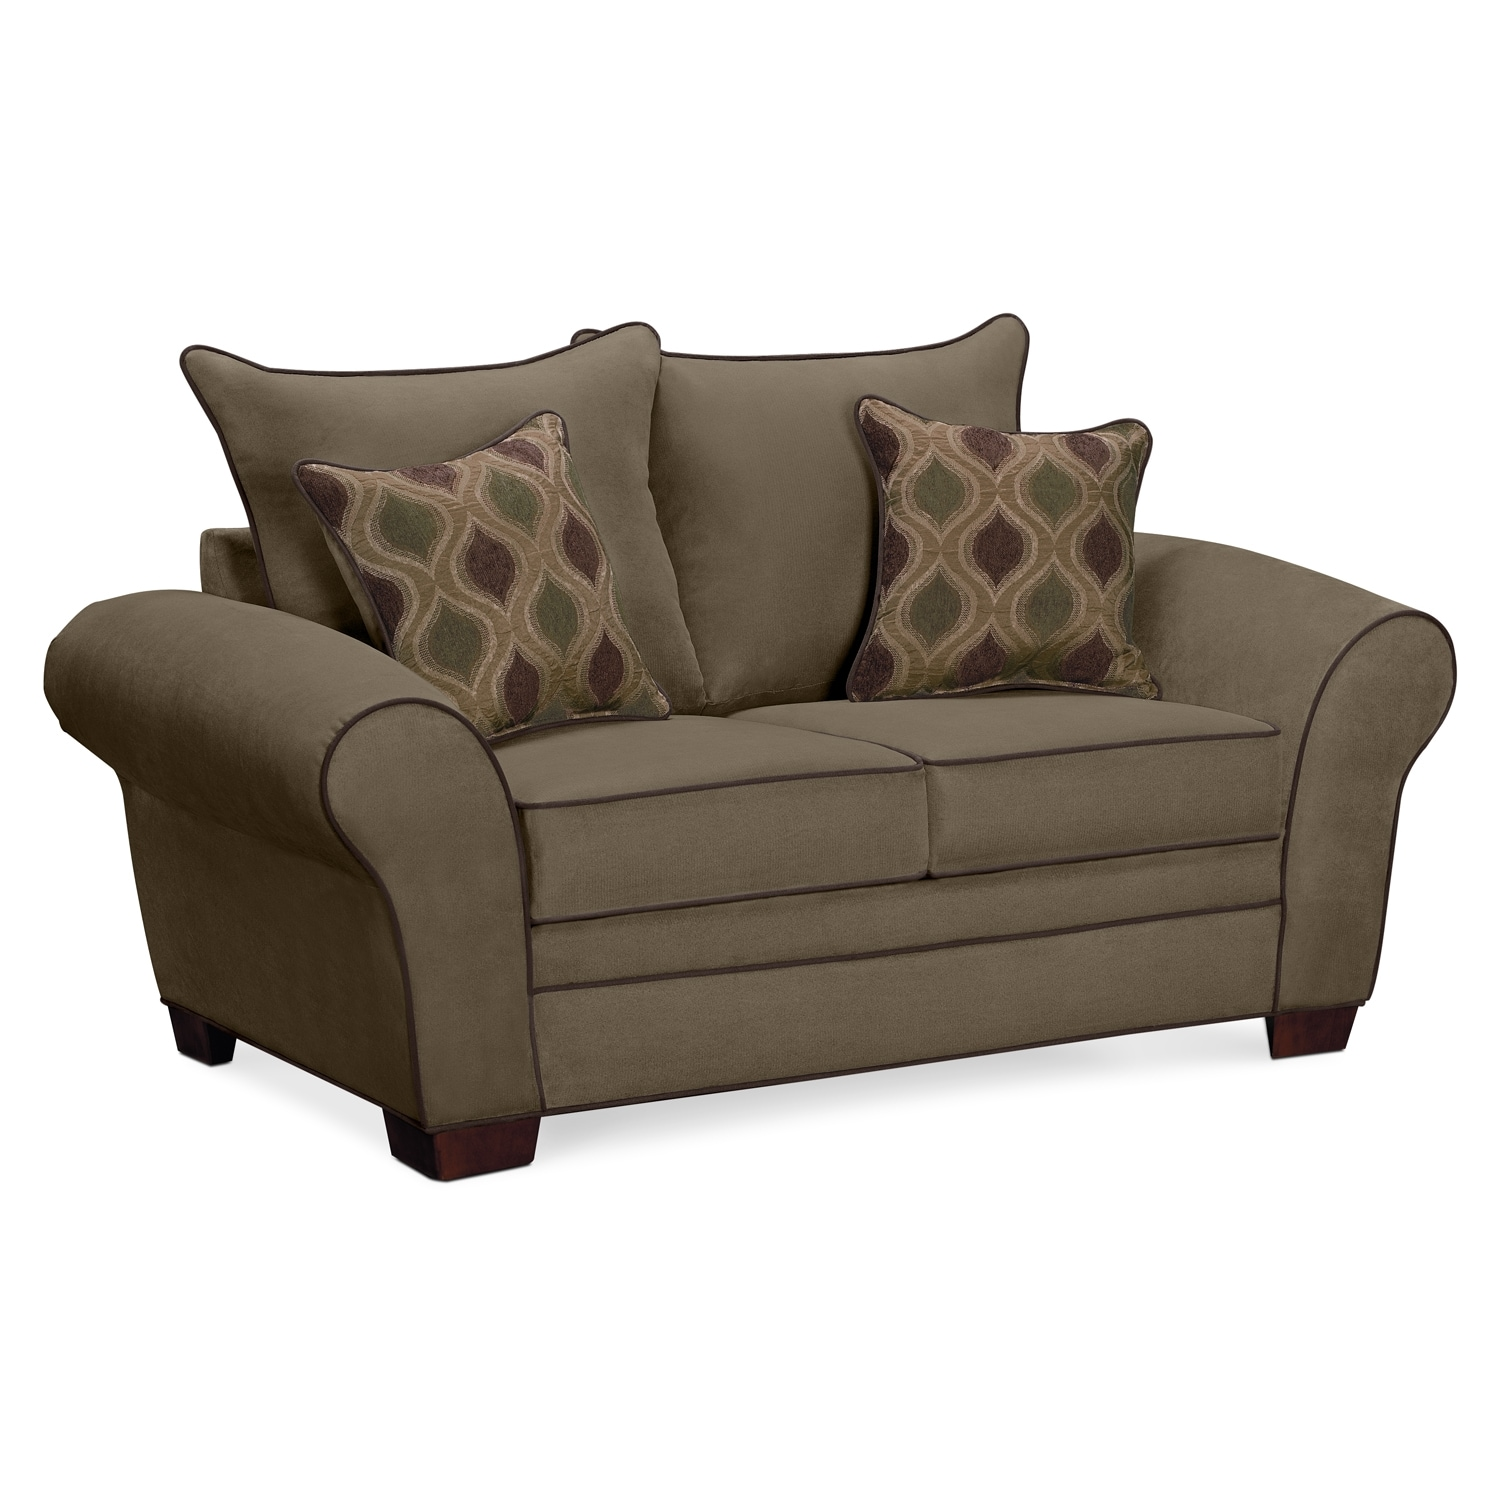 Living Room Furniture - Rendezvous Loveseat - Olive